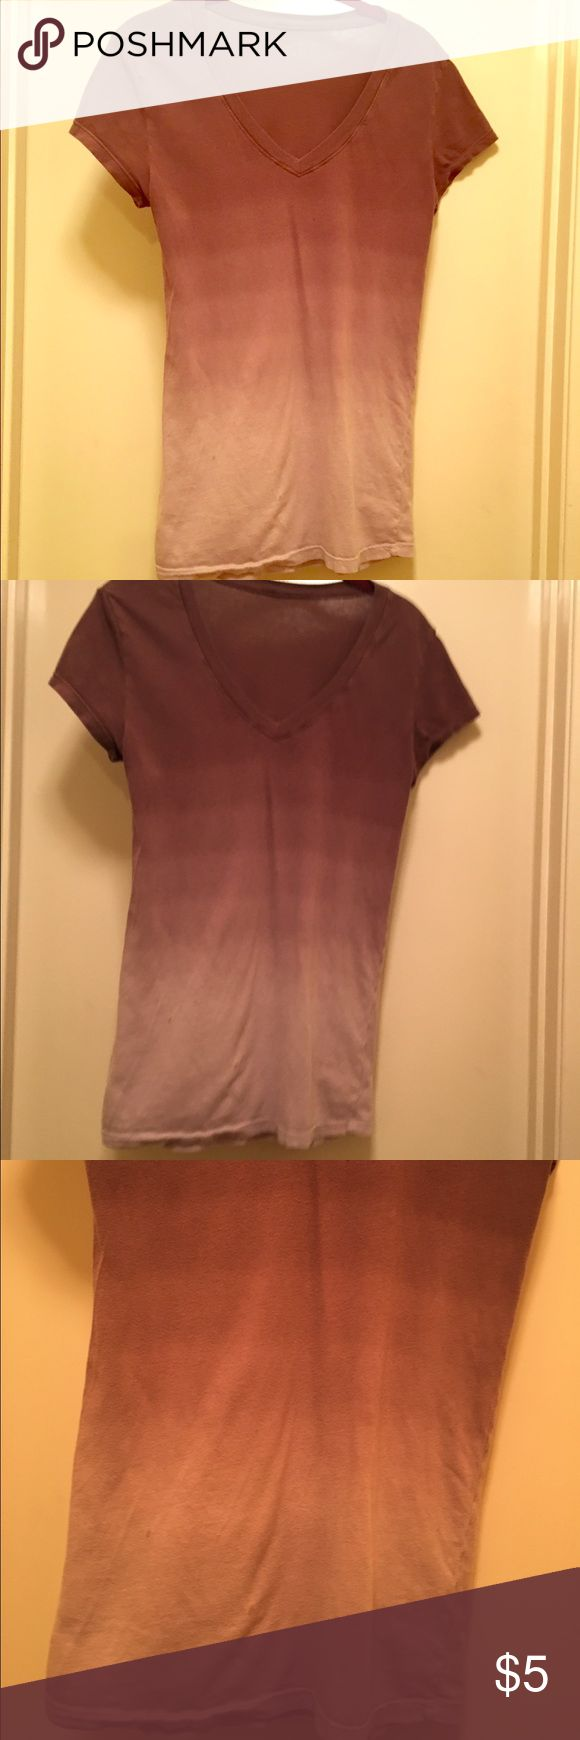 Women's brown short sleeve ombré t-shirt. 🌺 Women's rarely worn brown ombré short sleeve t-shirt.  Excellent condition! 💕🦋 Tops Tees - Short Sleeve